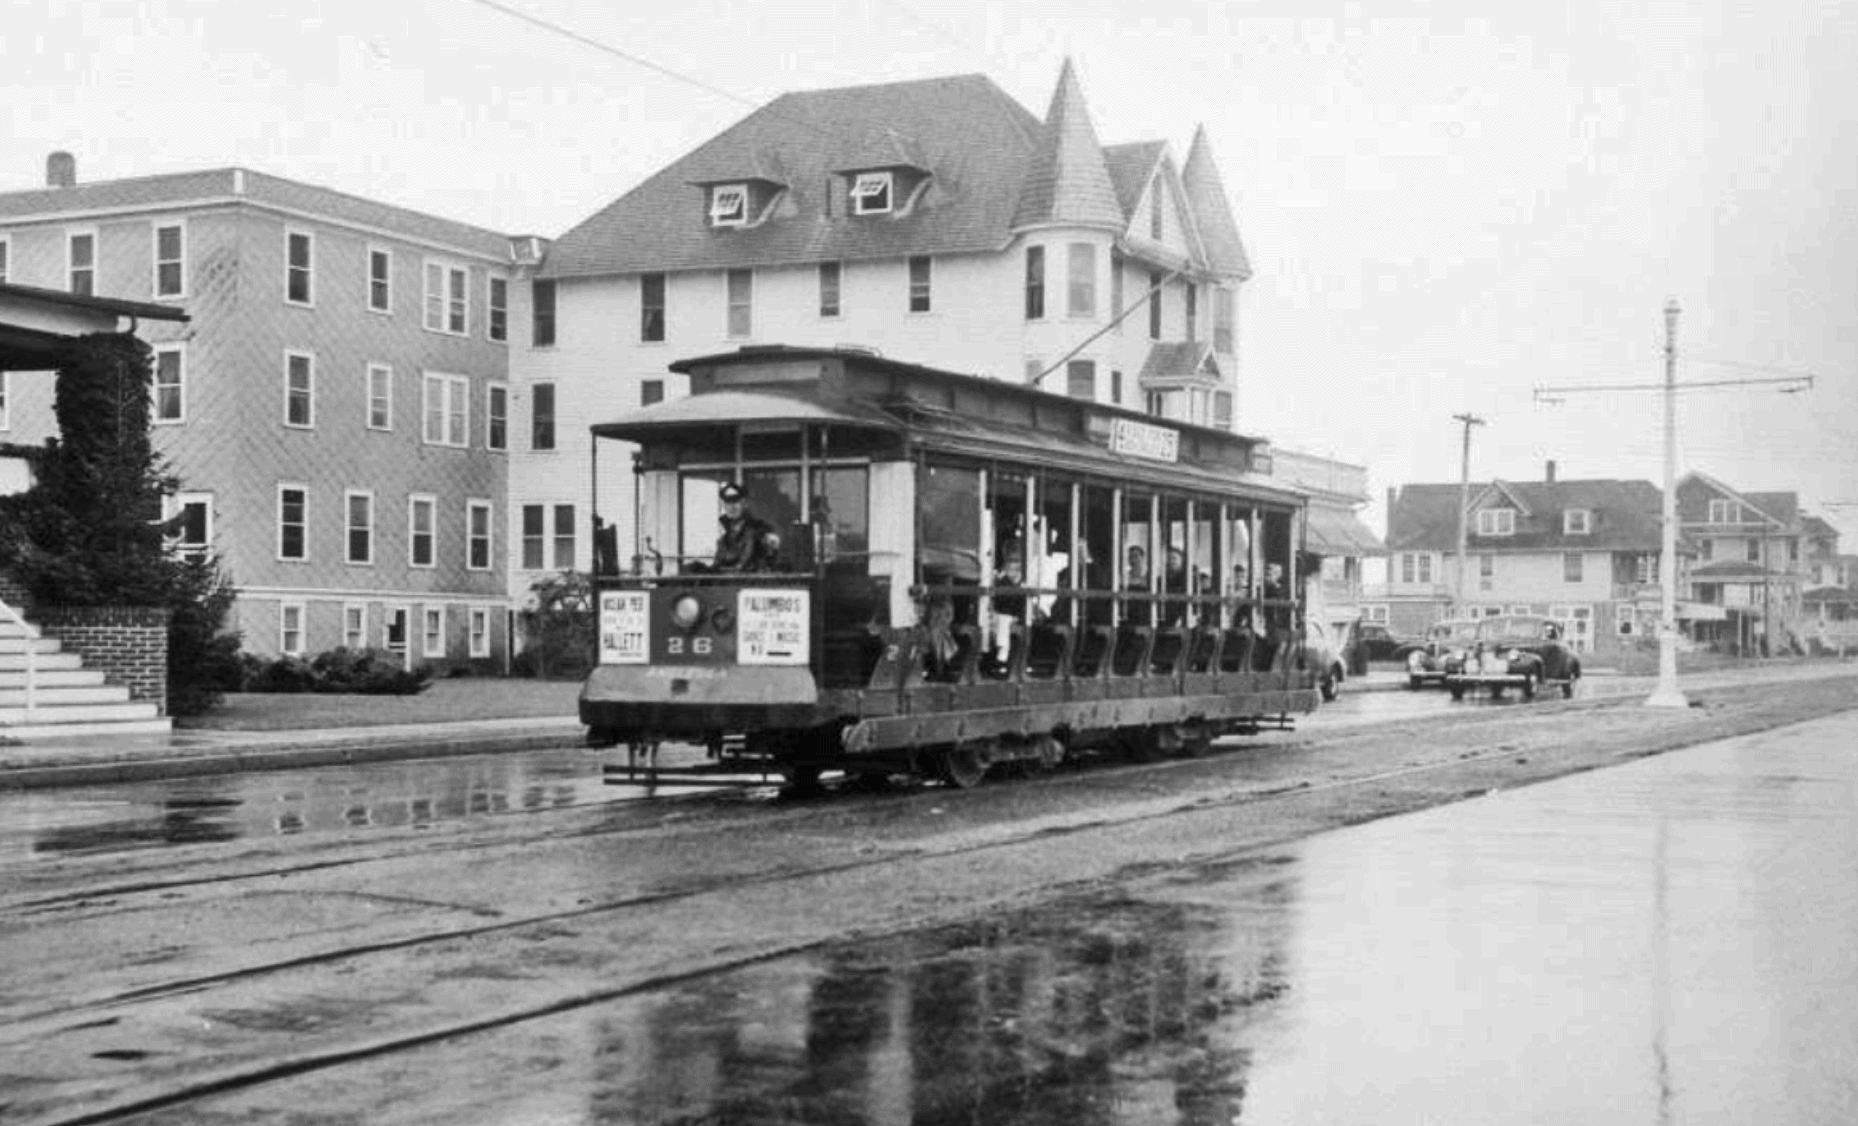 Wildwood Trolley To Be Restored